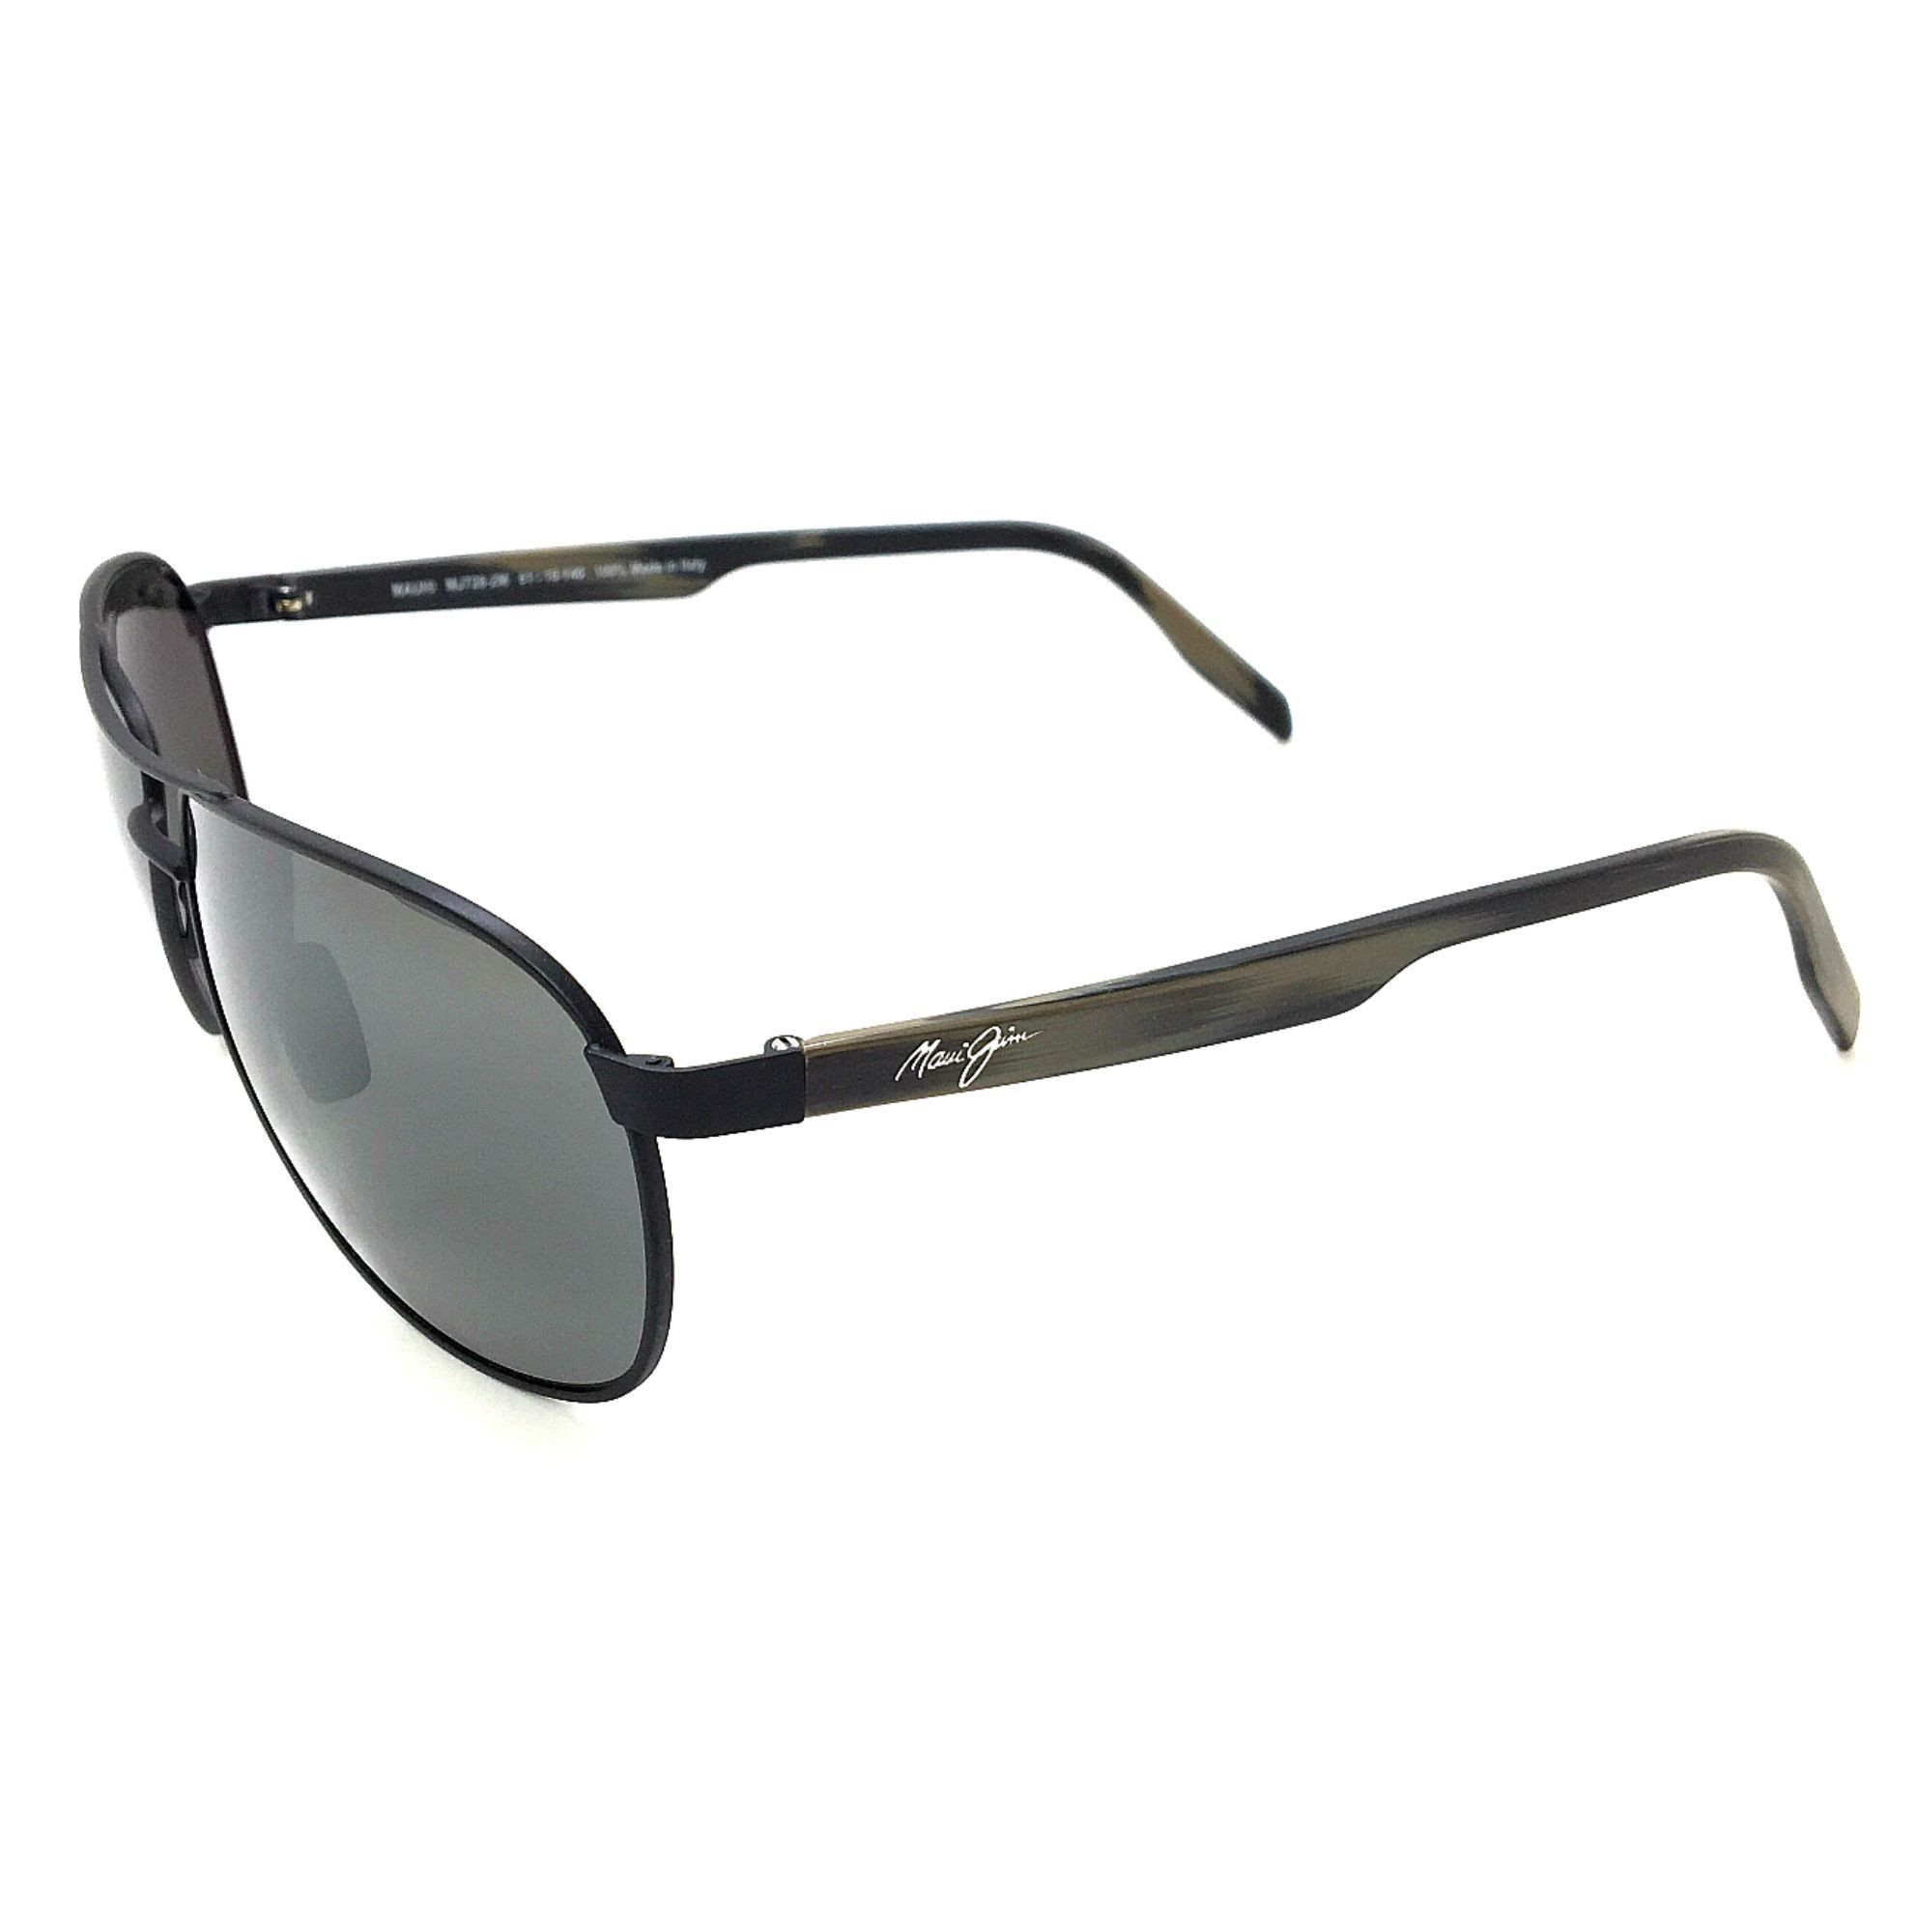 8151b1f22ad4 Maui Jim Castles 728-2M Matte Black/Neutral Grey Polarized Sunglasses